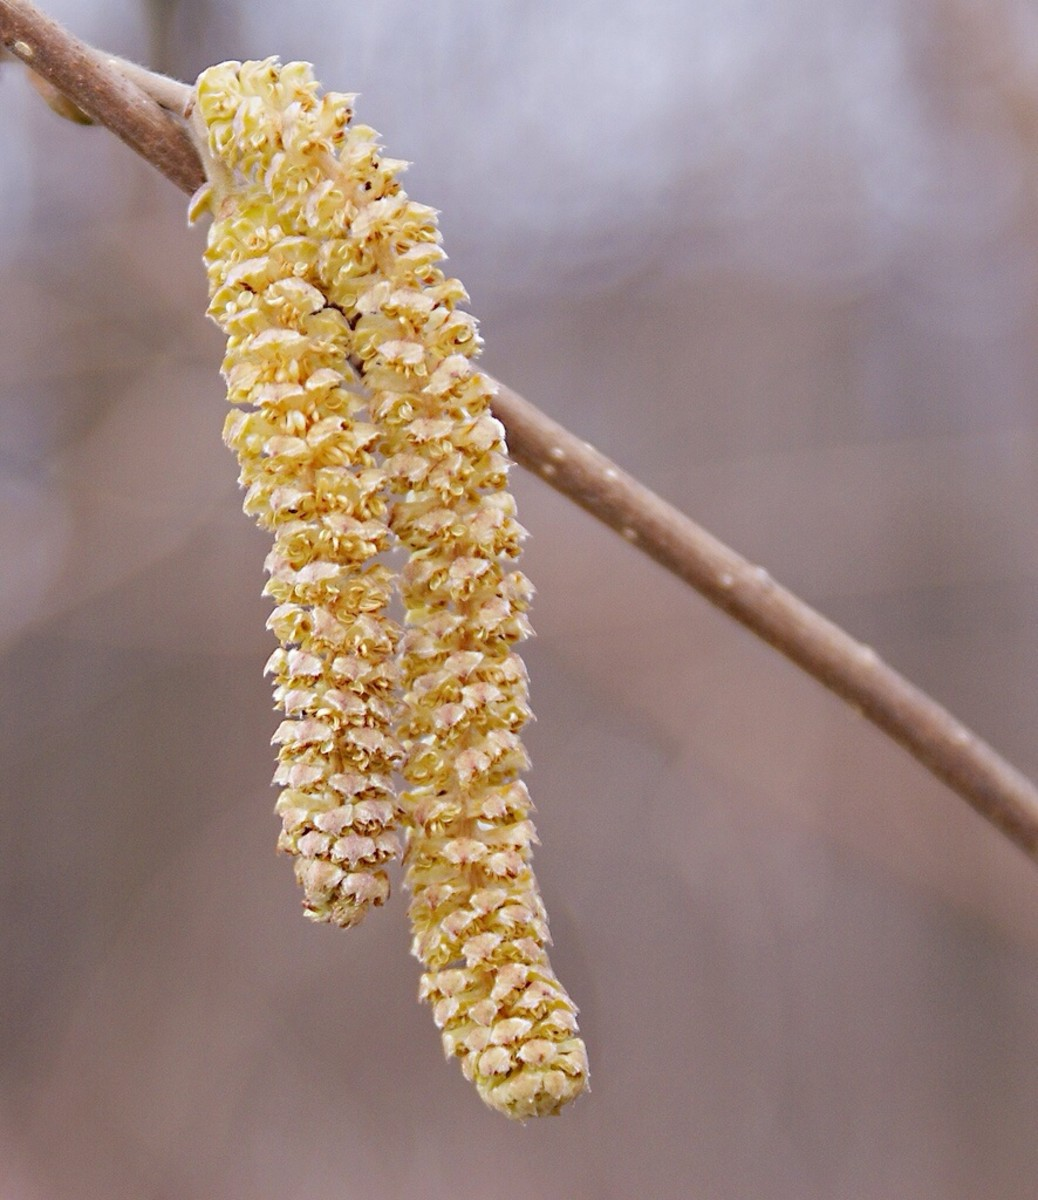 A catkin is a cluster of flowers. Catkins release pollen grains in the spring. These can cause hay fever.